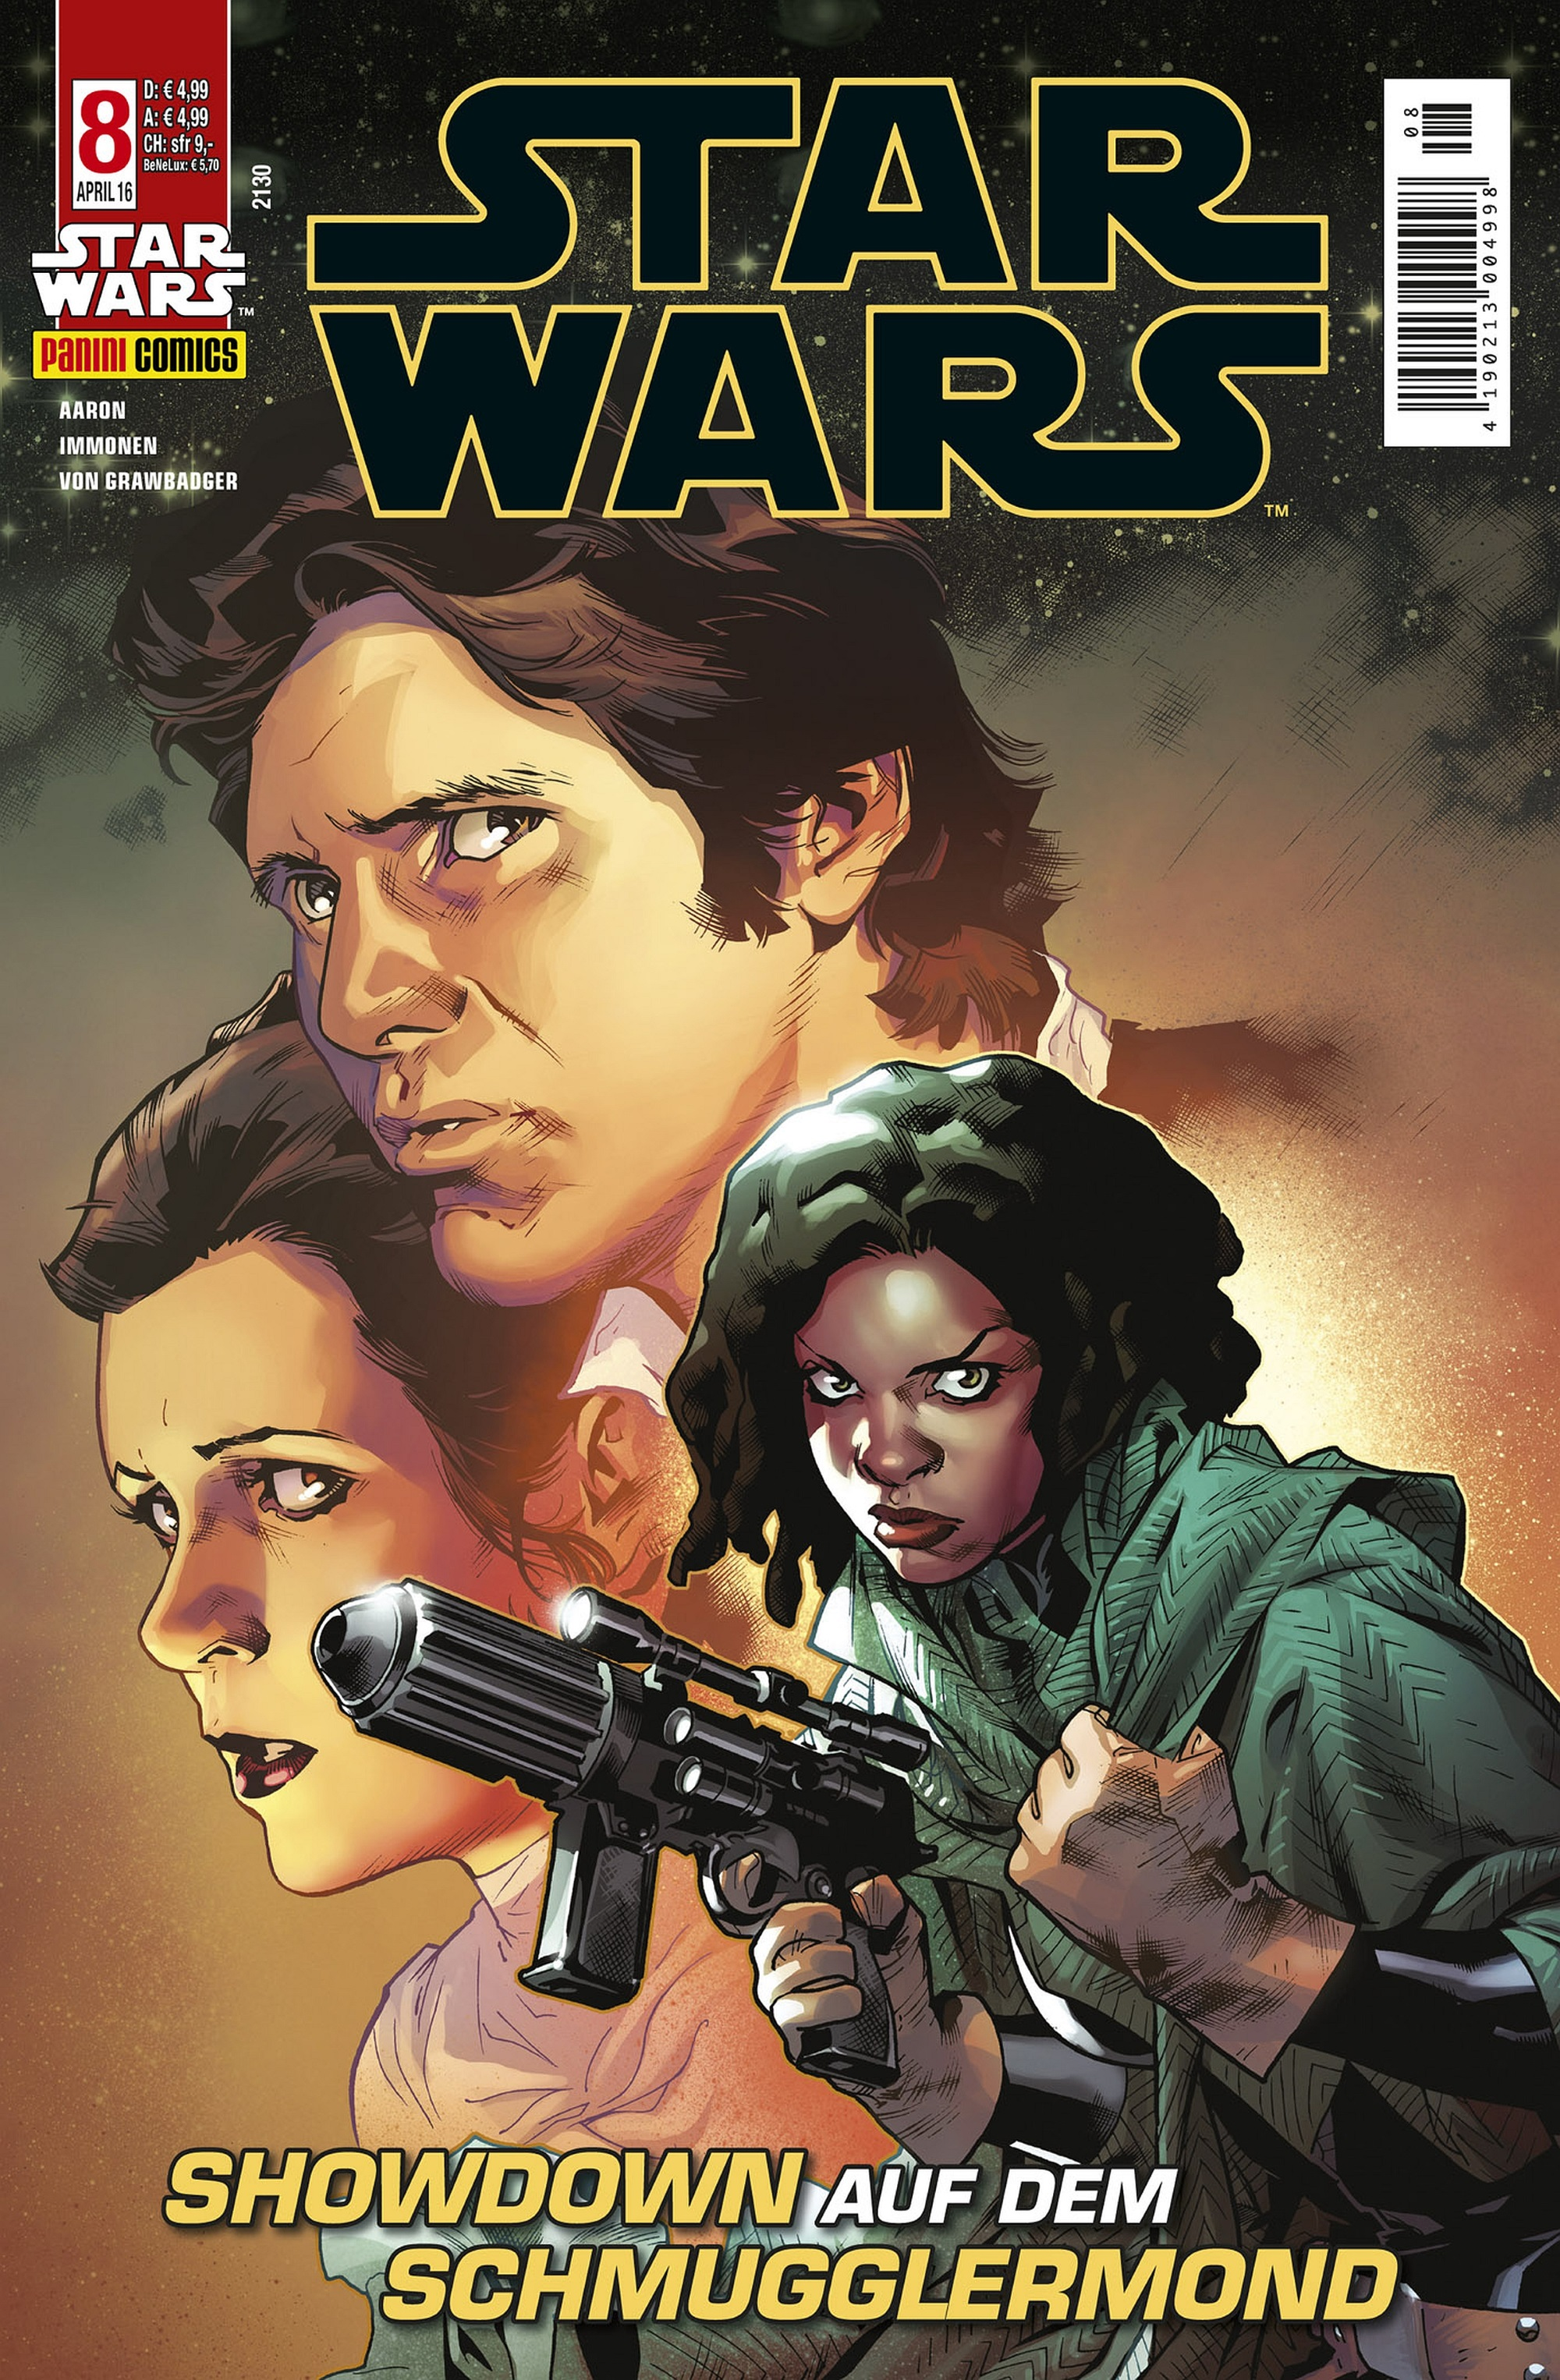 Star Wars #8 (Kiosk-Cover) (23.03.2016)